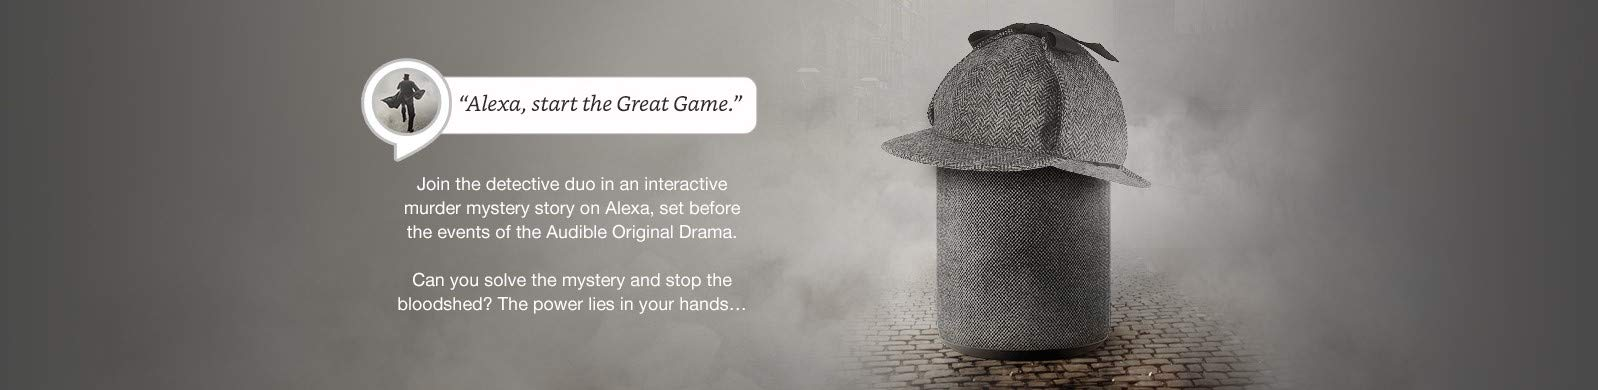 Alexa, start the Great Game. Join the detective duo in an interactive murder mystery story on Alexa, set before the events of the Audible Original Drama. Can you solve the mystery and stop the bloodshed? The power lies in your hands…